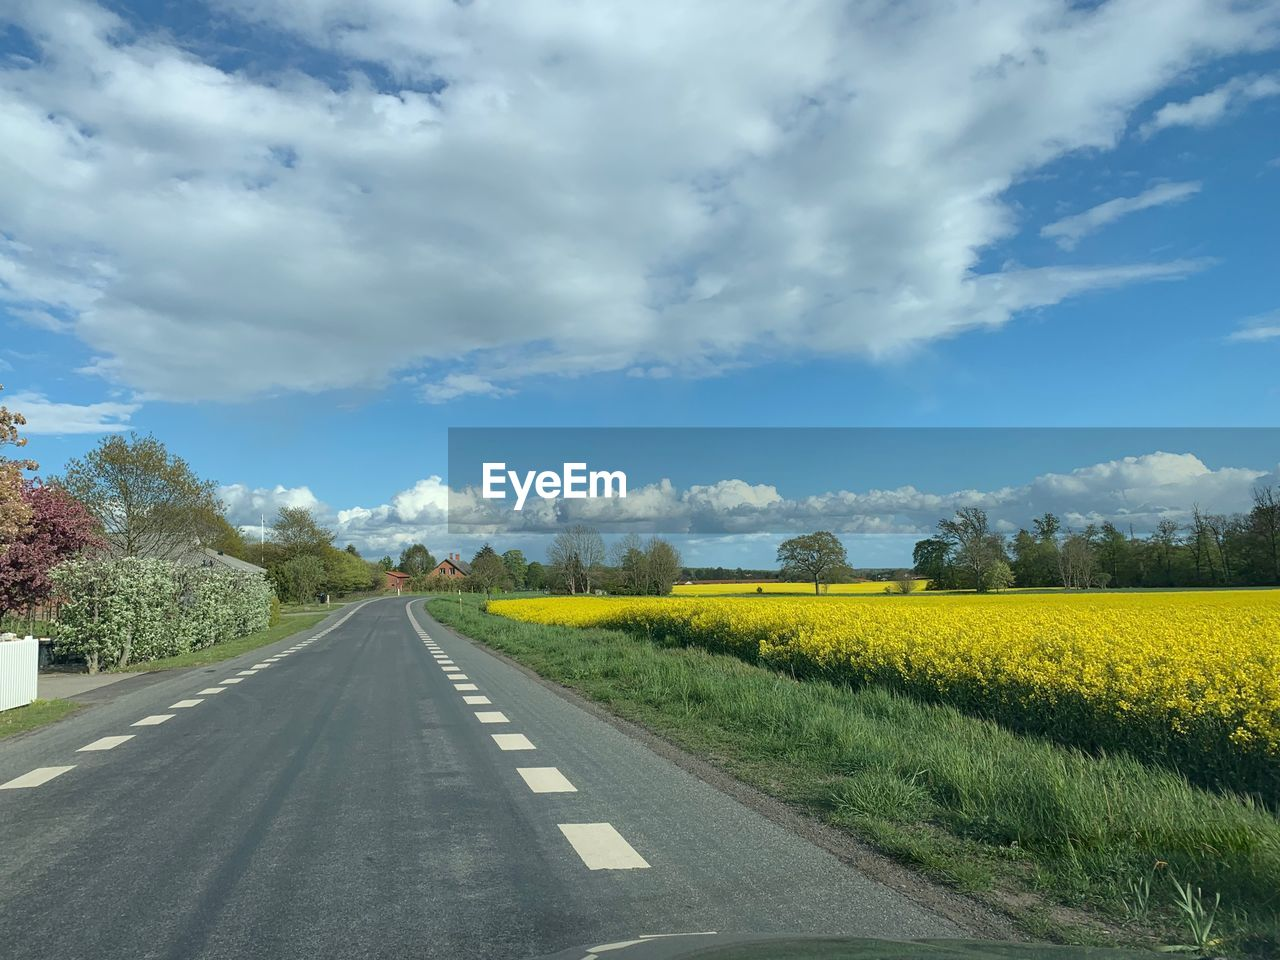 EMPTY ROAD ALONG PLANTS AND YELLOW FIELD